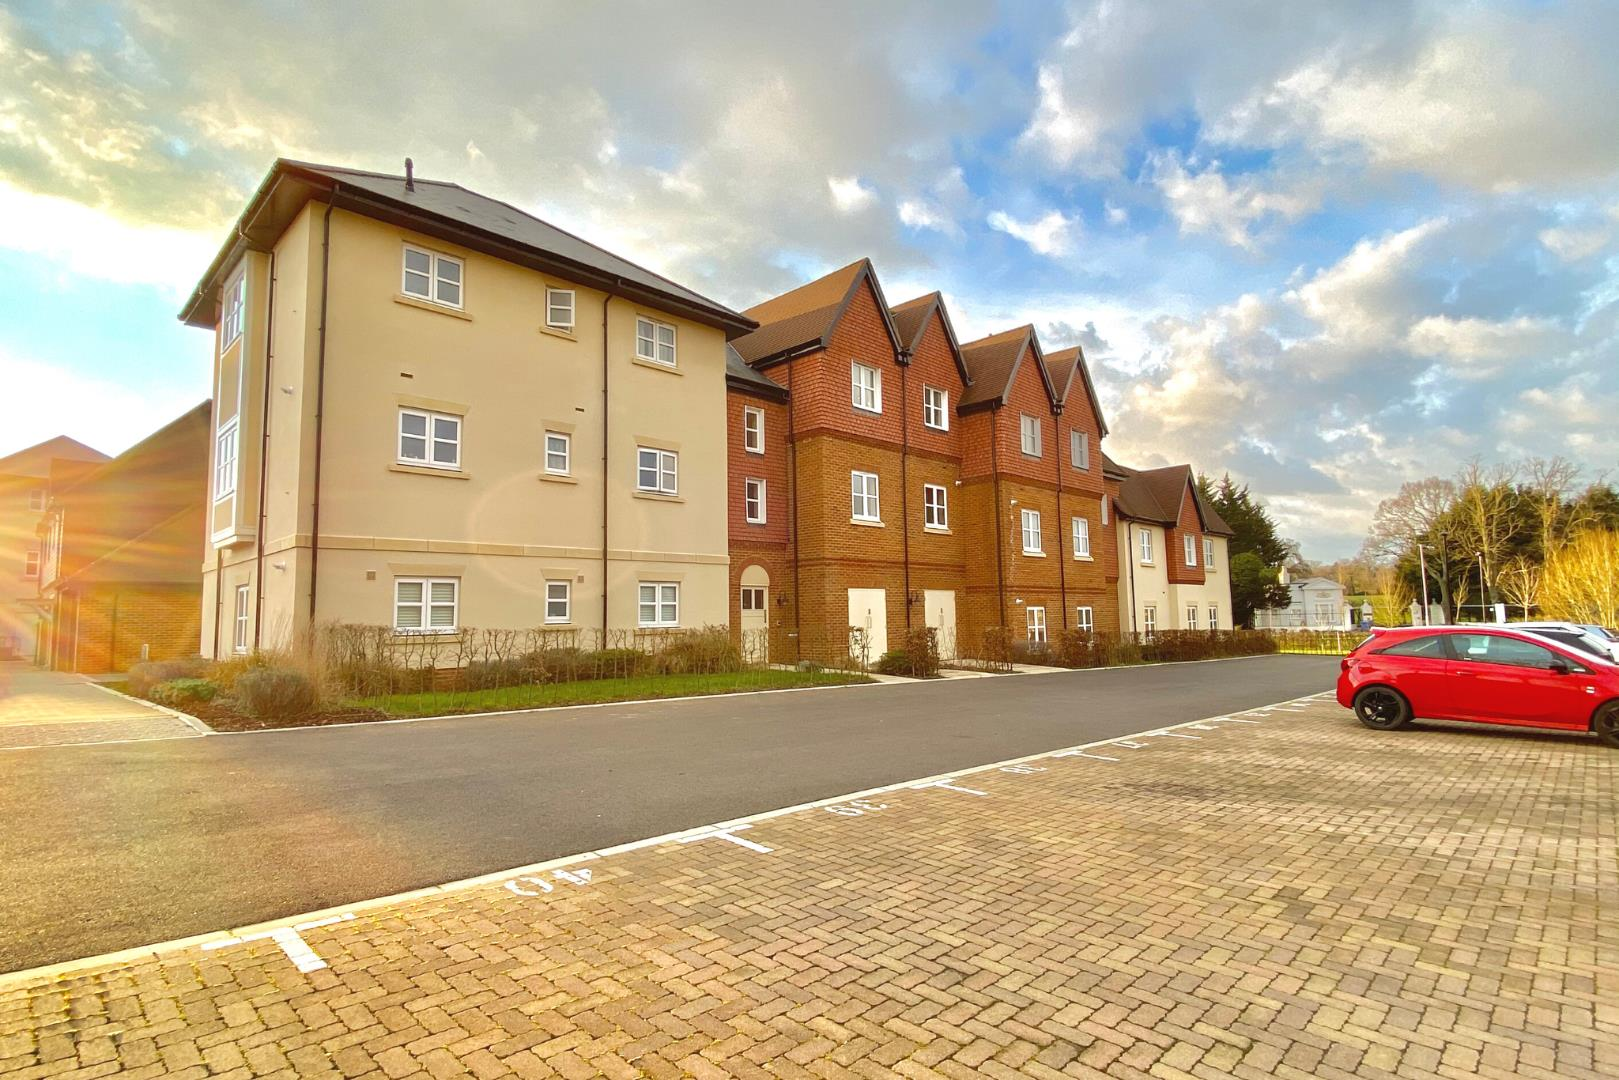 1 bed flat for sale in Warfield, RG42